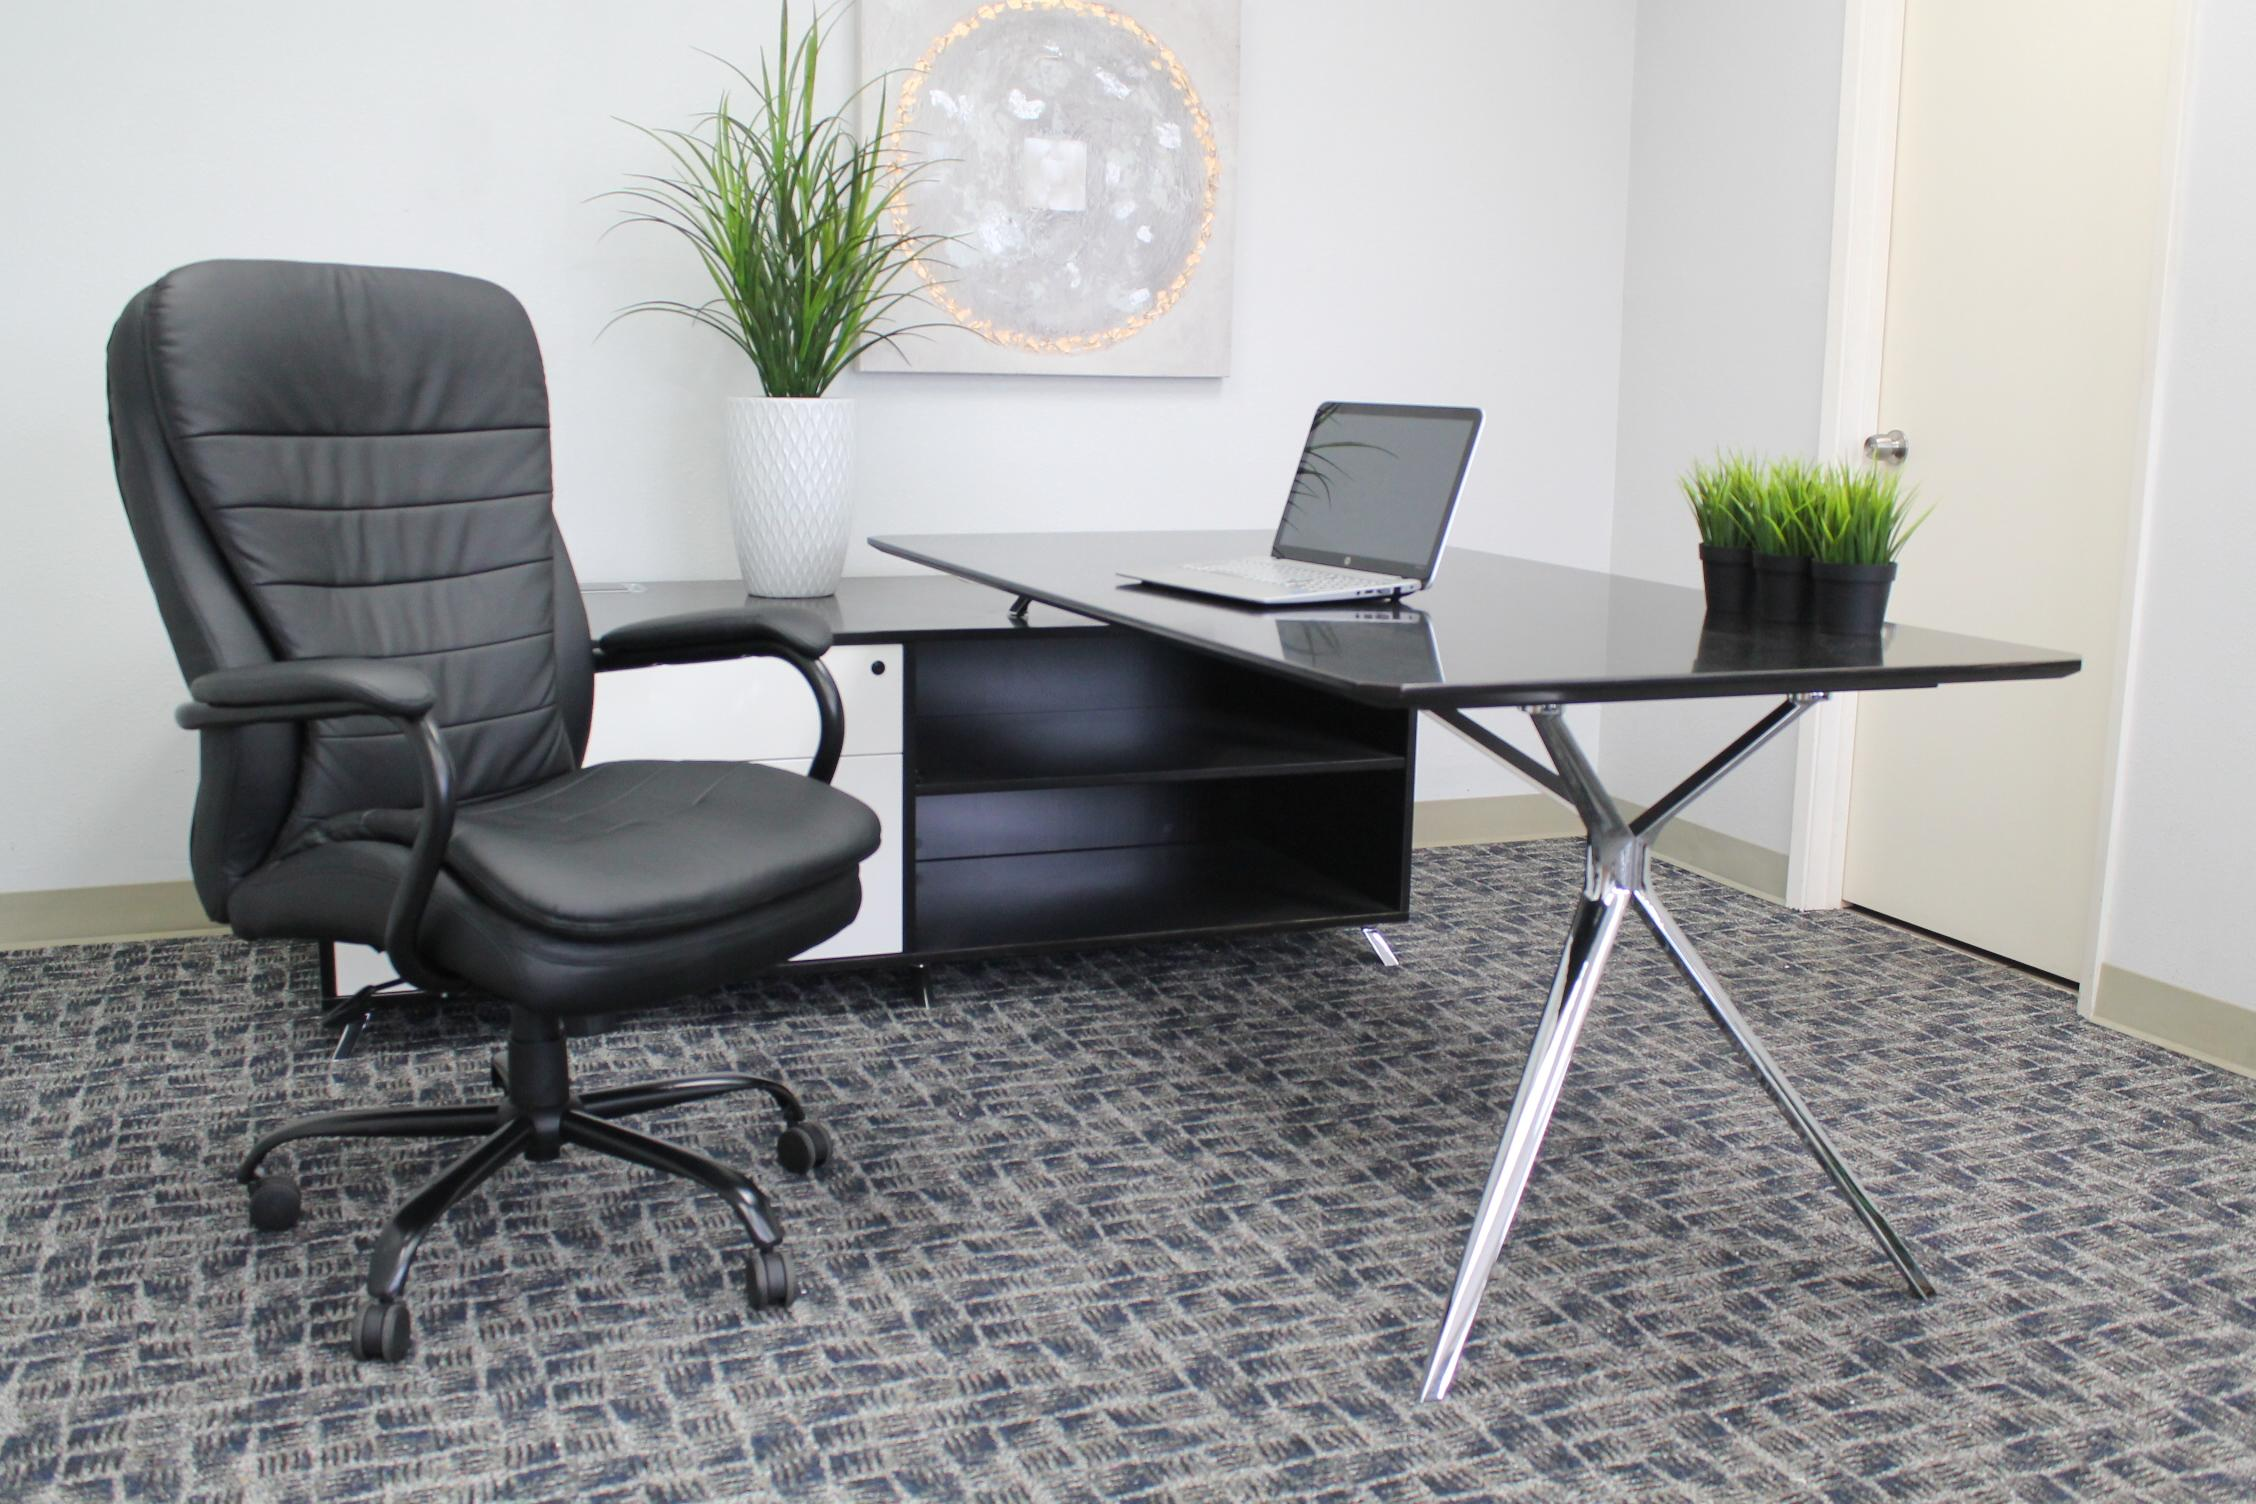 Boss Office Products B991 Bb Heavy Duty Double Plush Leatherplus Chair With 350lbs